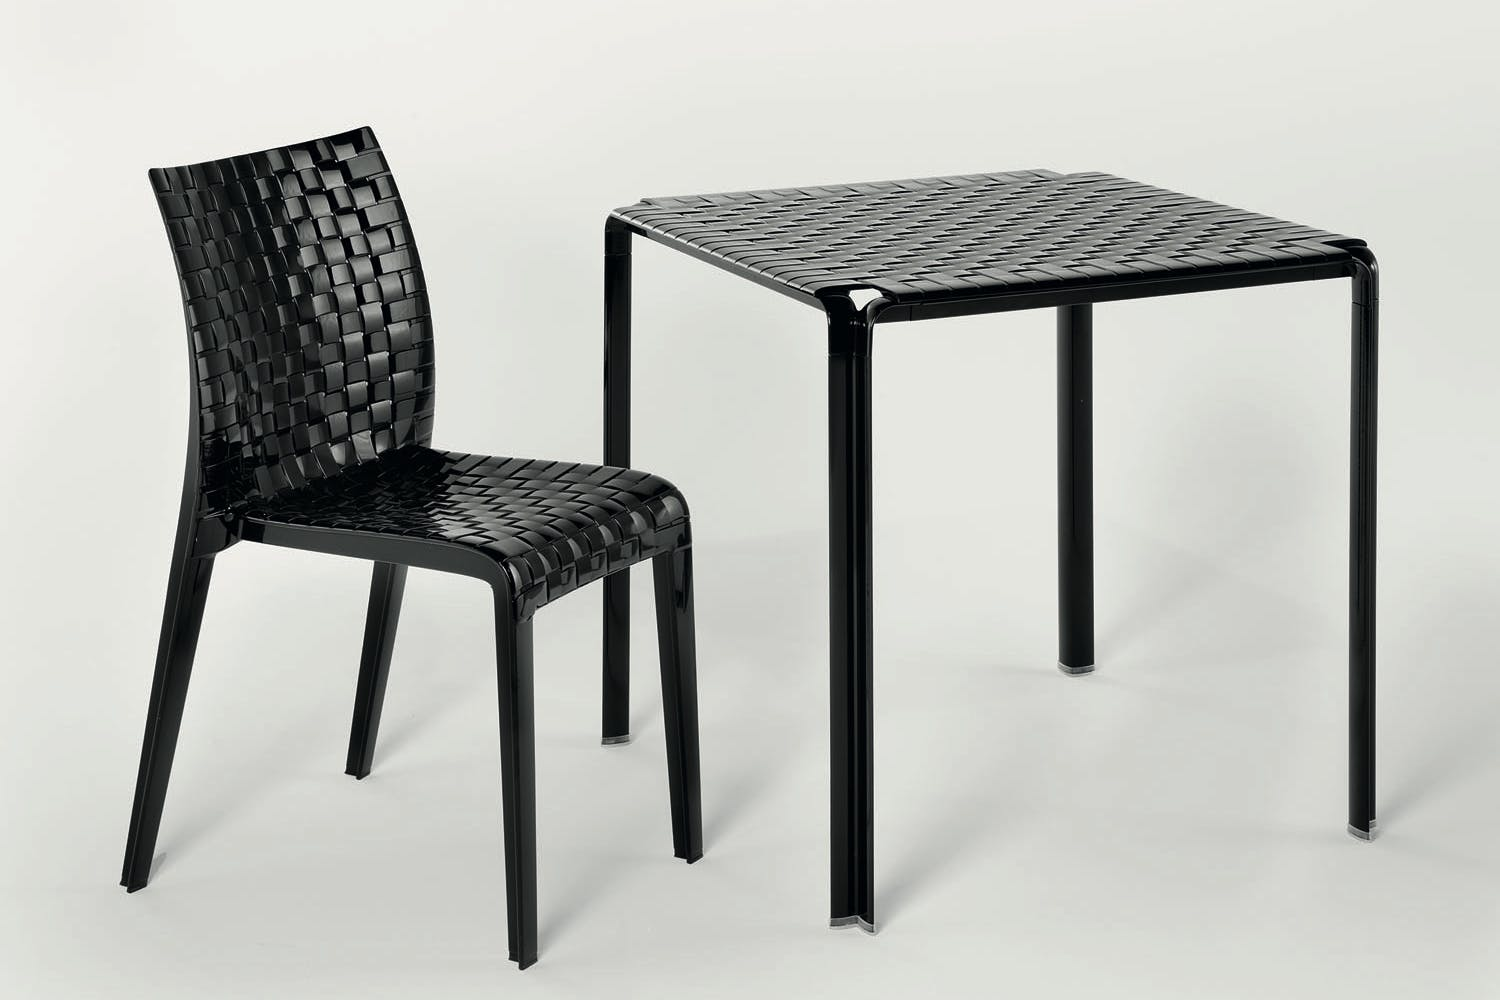 ami ami table by tokujin yoshioka for kartell  space furniture - ami ami table by tokujin yoshioka for kartell